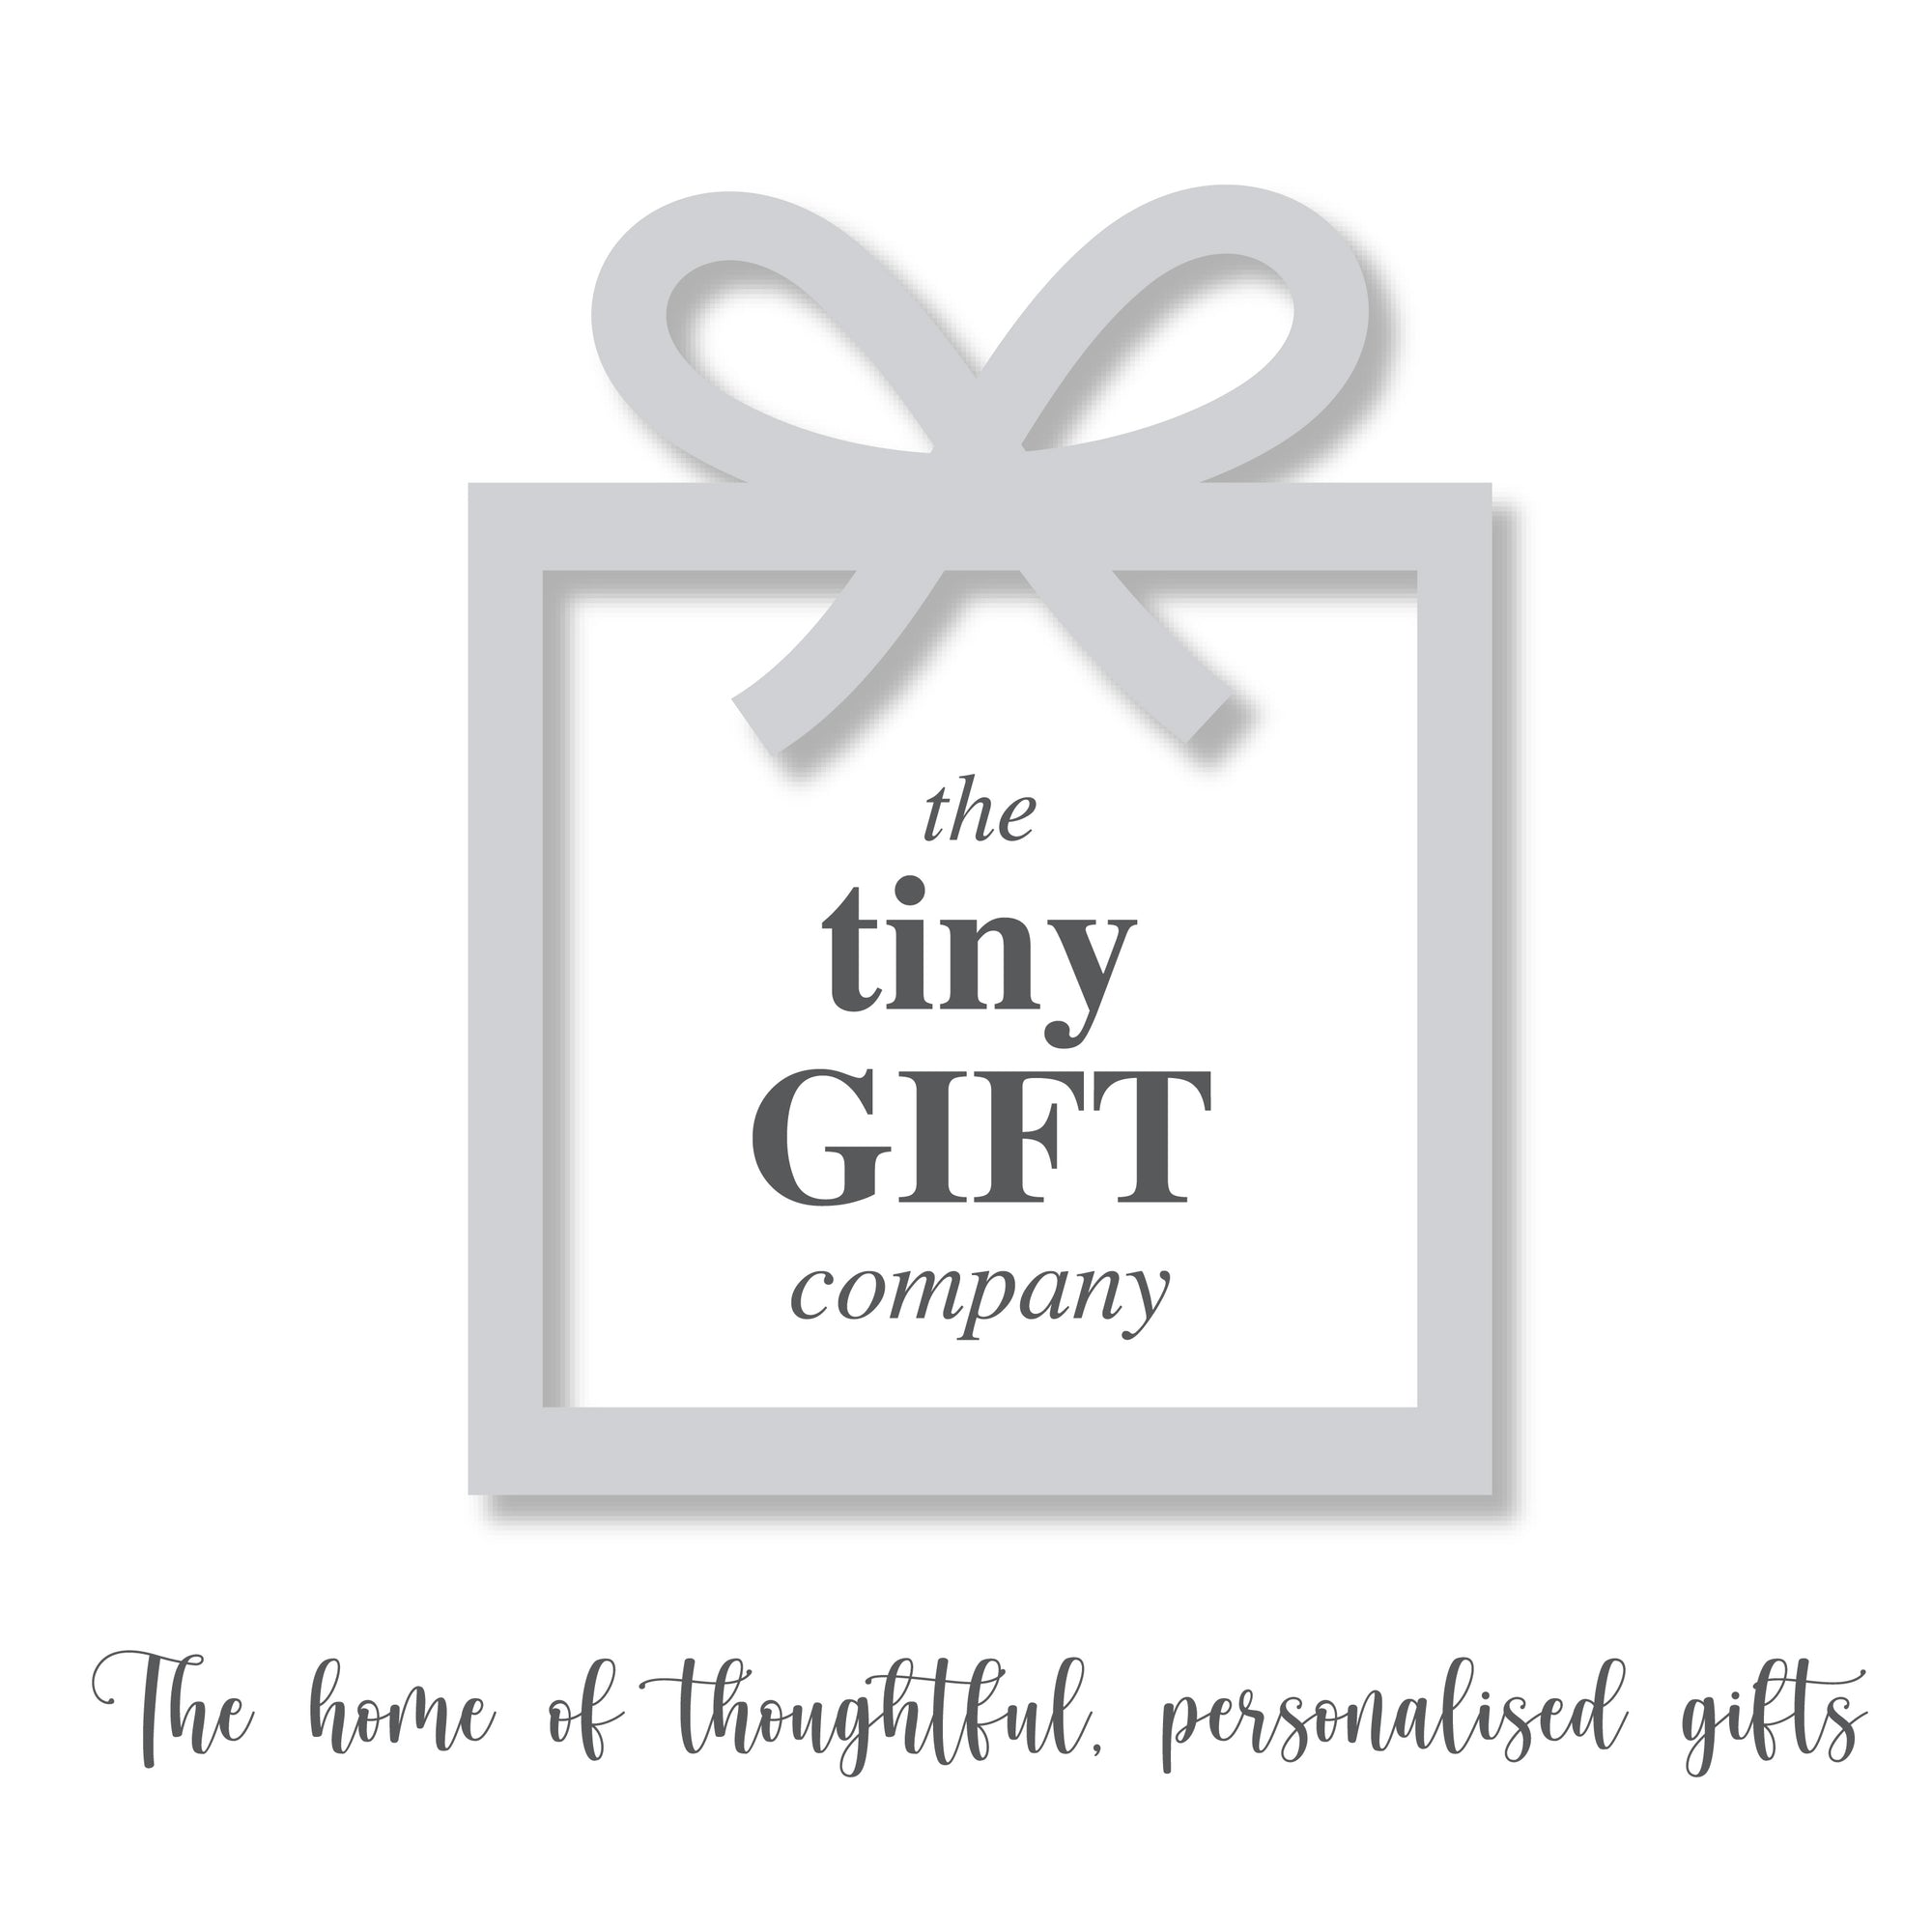 The Tiny Gift Company